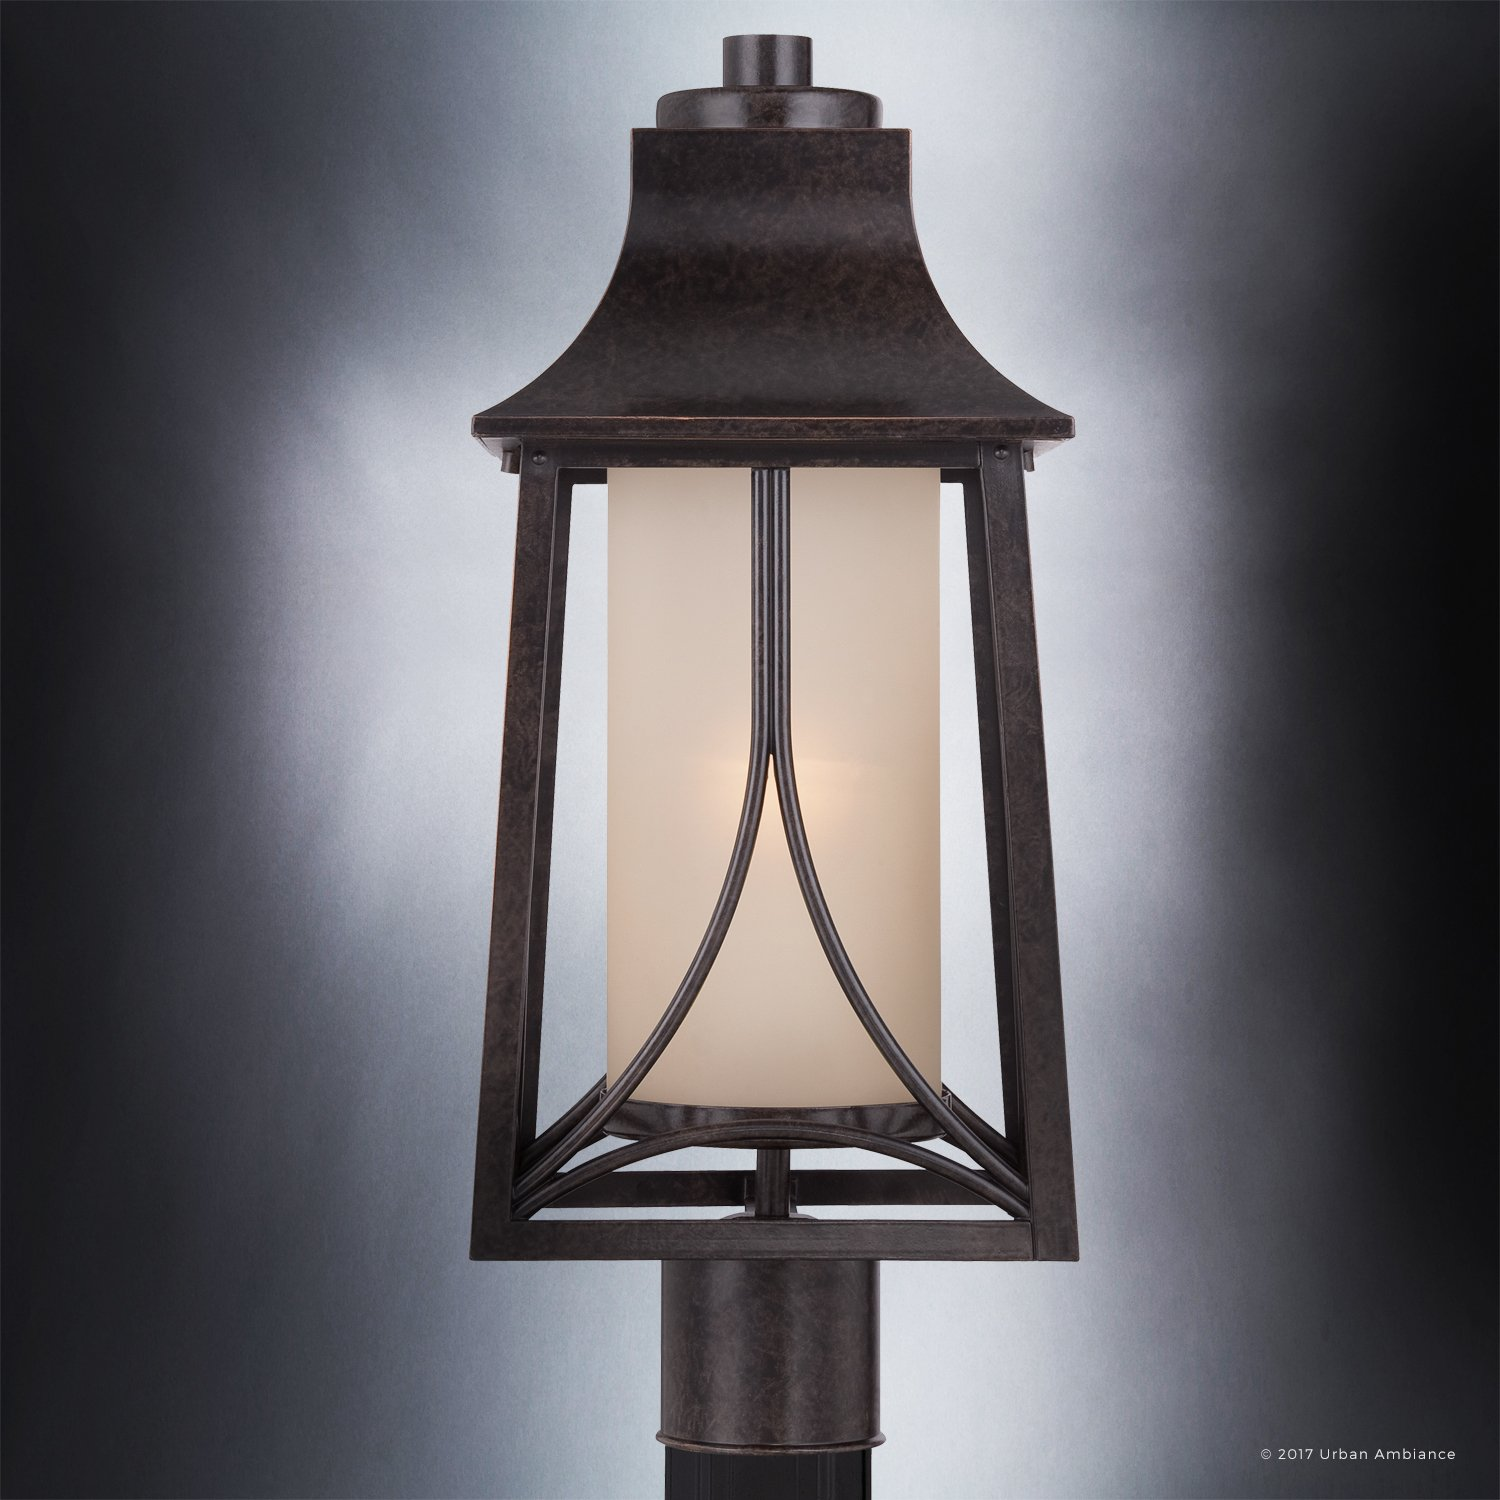 Luxury Asian Outdoor Post Light, Large Size: 21''H x 8.5''W, with Craftsman Style Elements, Airy and Simplistic Design, Beautiful Royal Bronze Finish and Light Amber Glass, UQL1083 by Urban Ambiance by Urban Ambiance (Image #5)